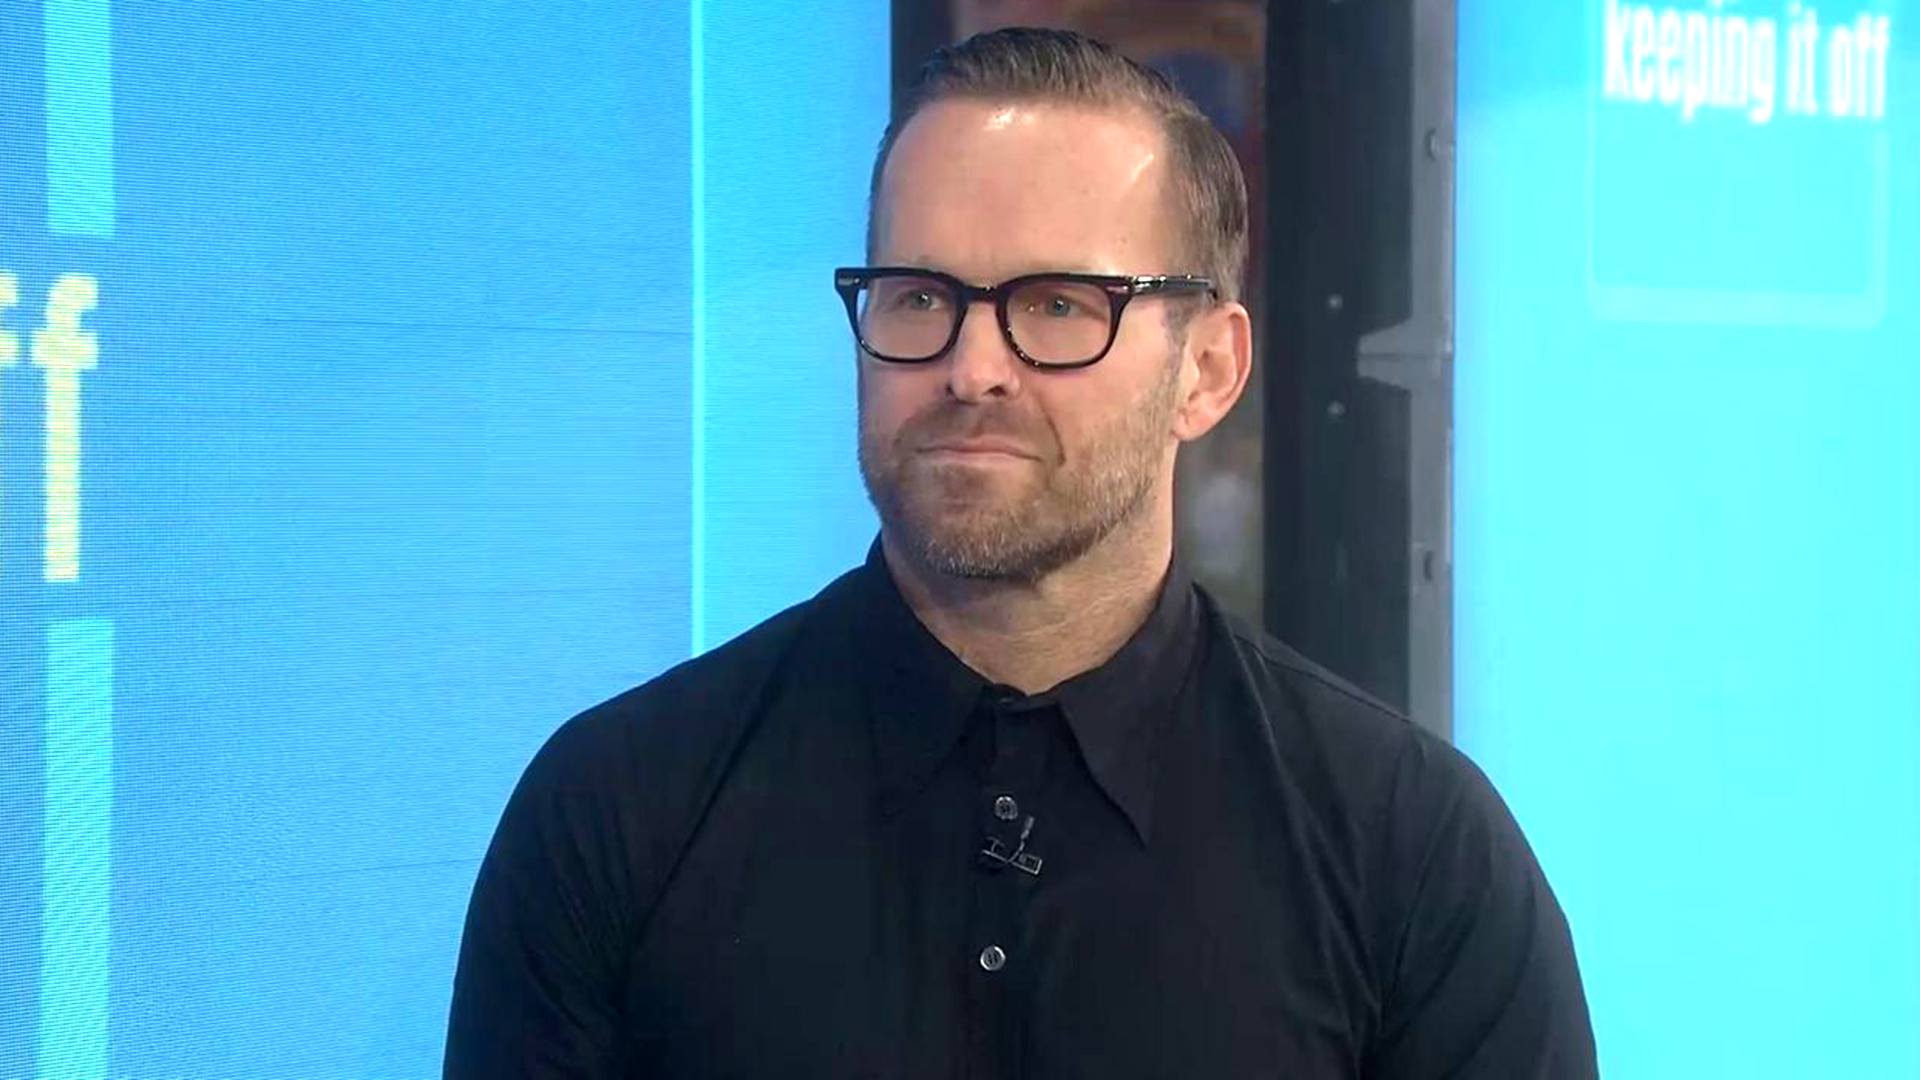 'The Biggest Loser' trainer Bob Harper discusses the difficulty of keeping weight off - TODAY.com